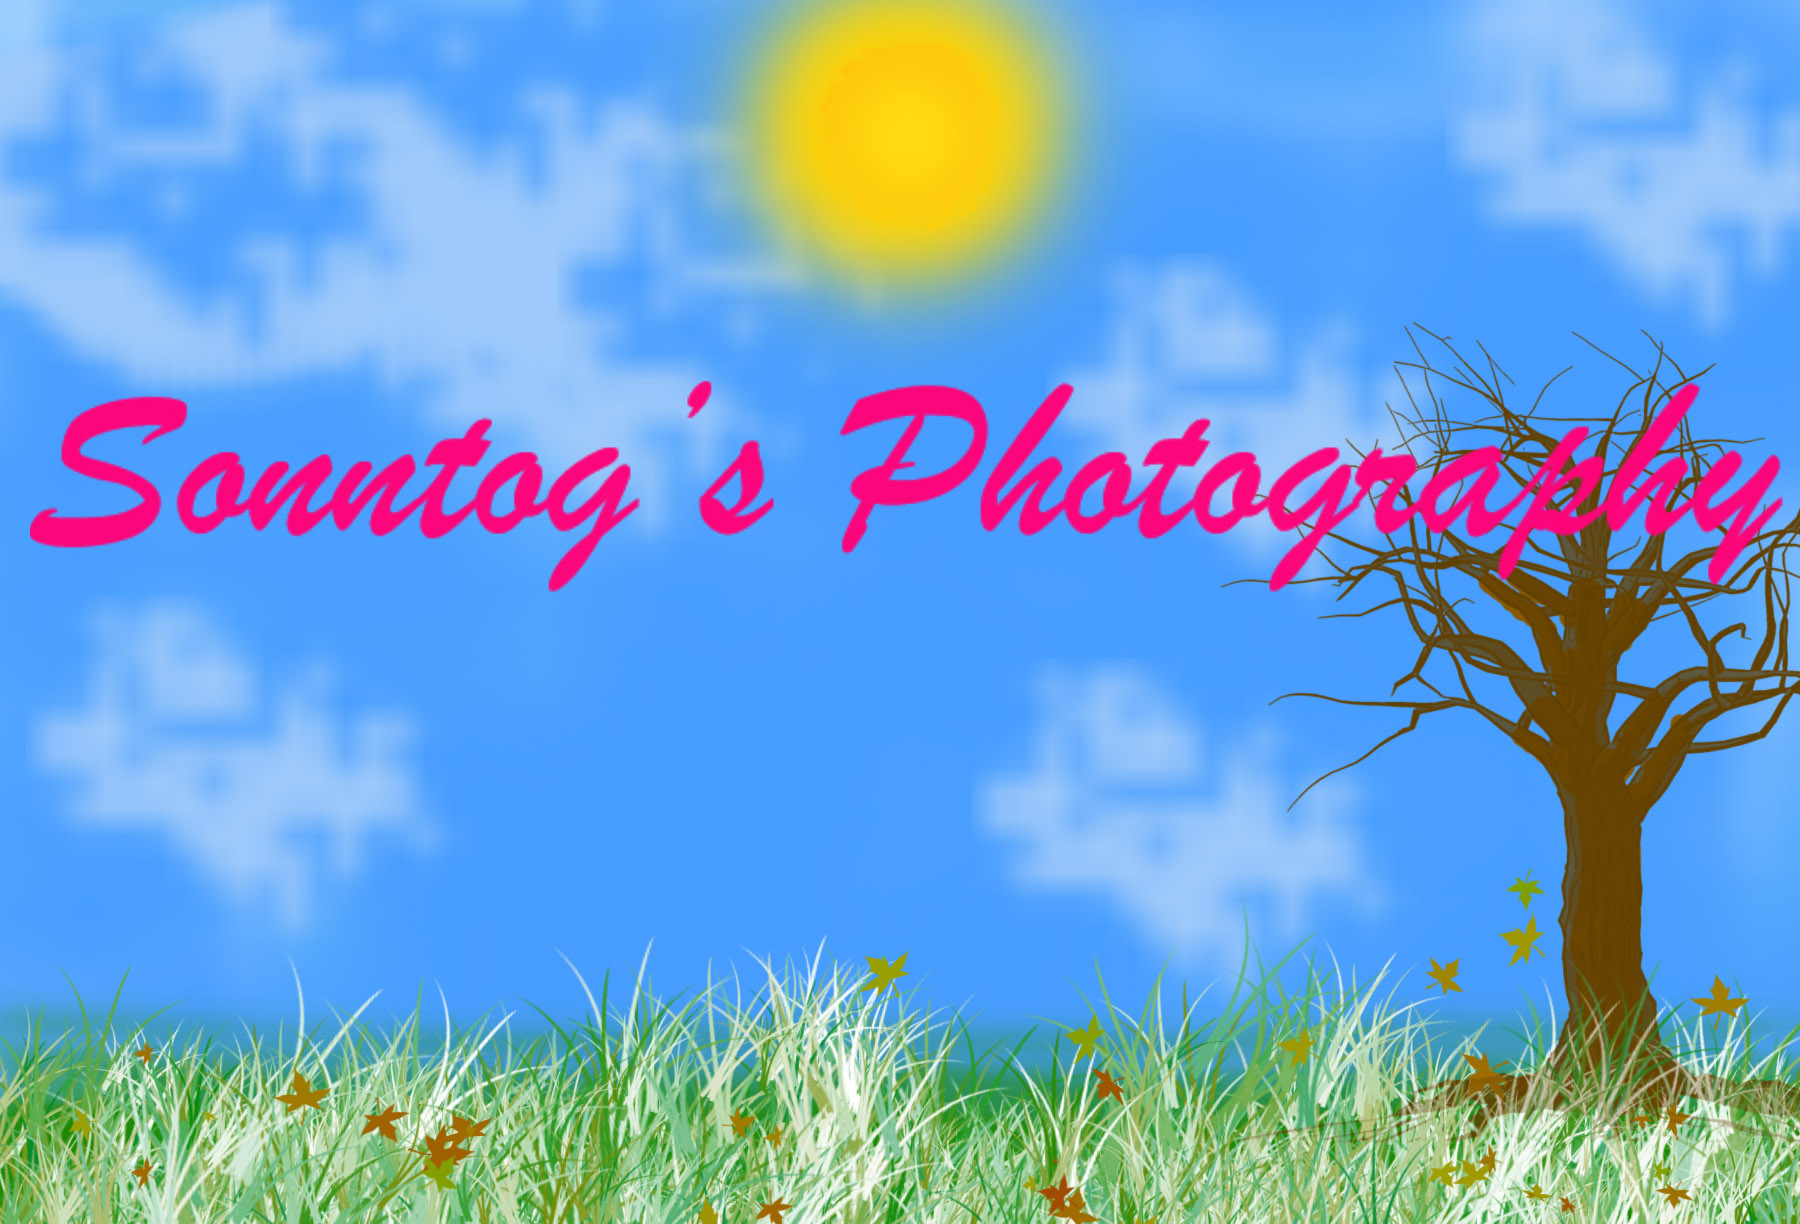 Sonntog's Photography